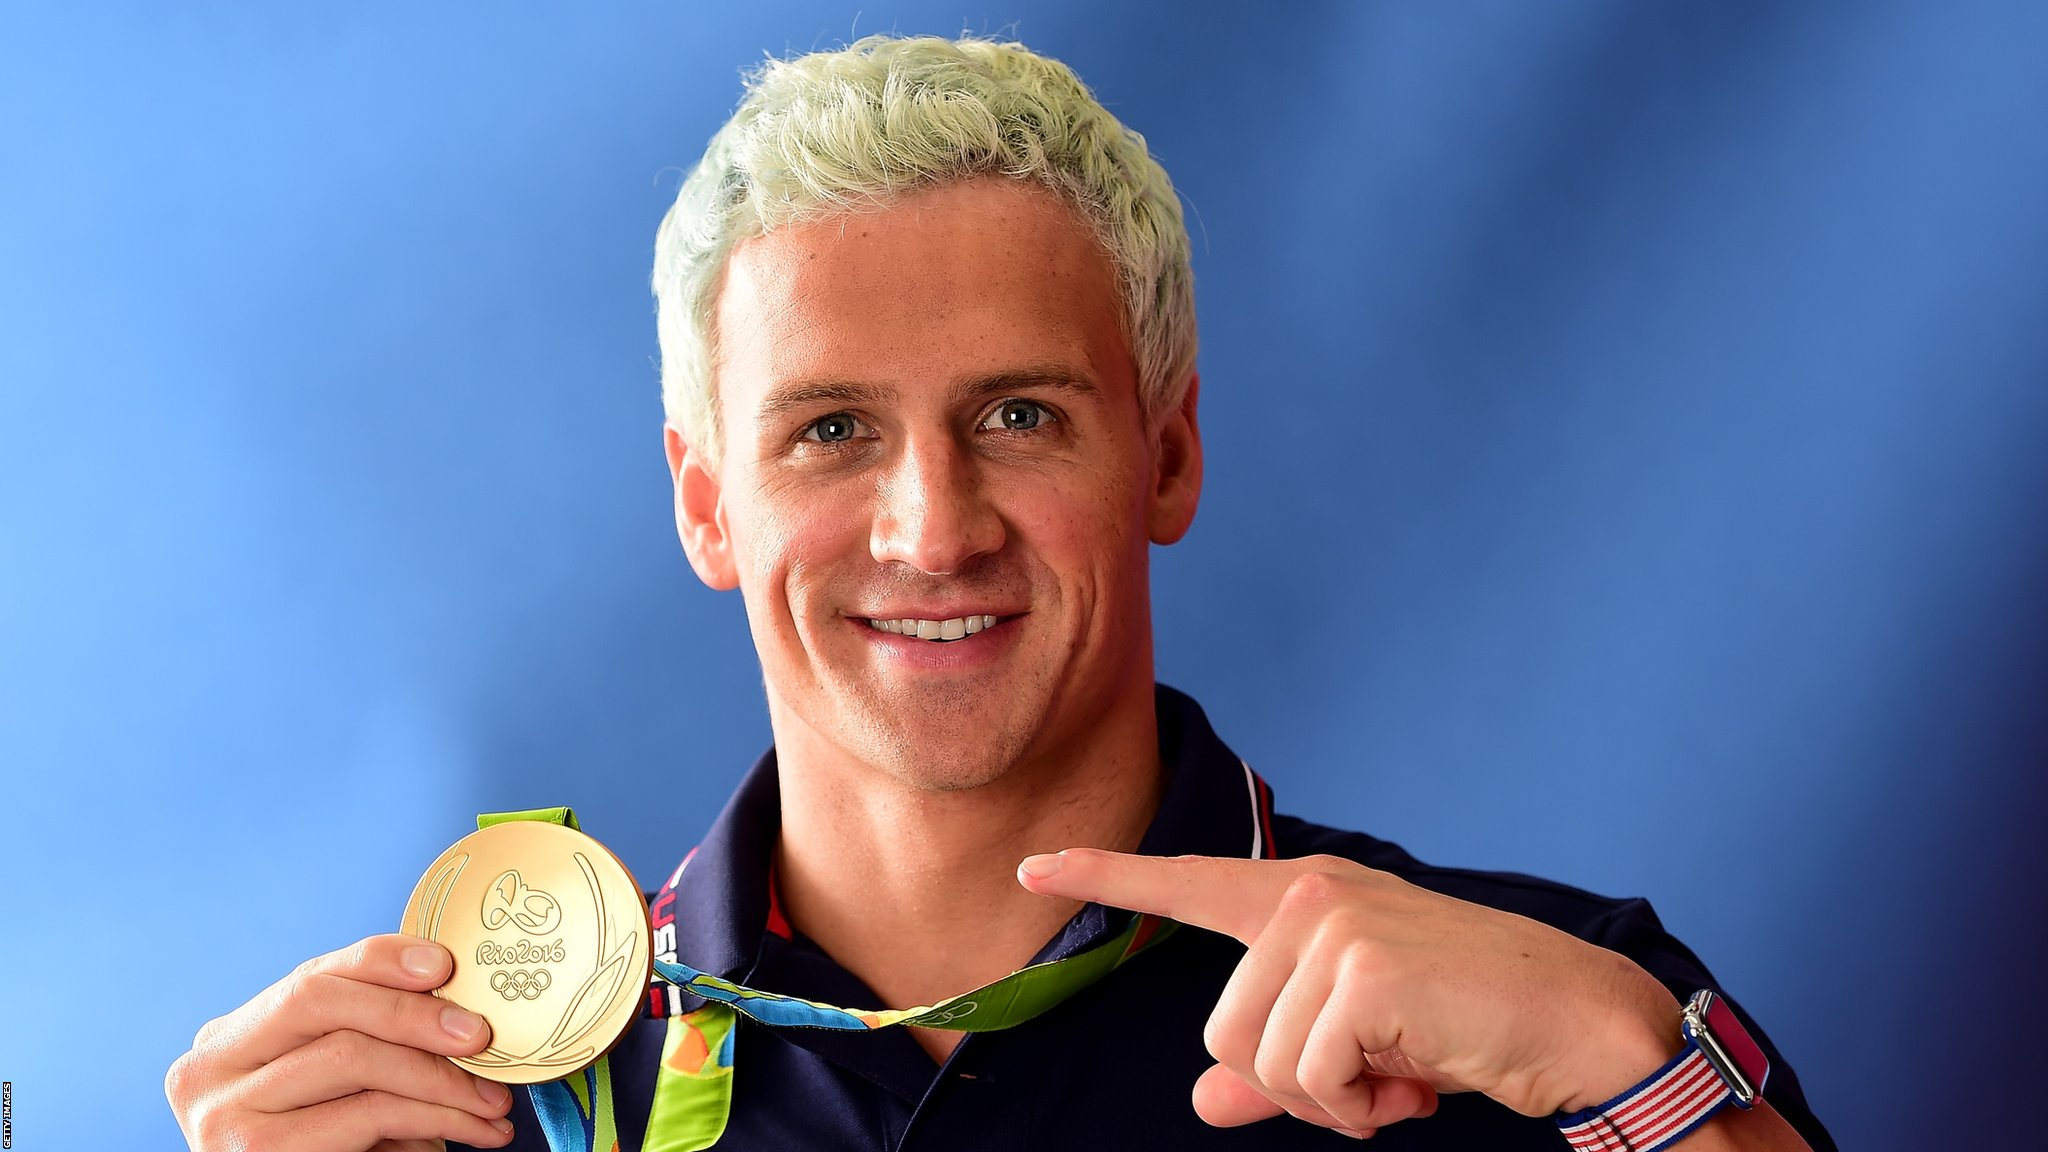 US swimmer Lochte given 14-month doping ban after social media post